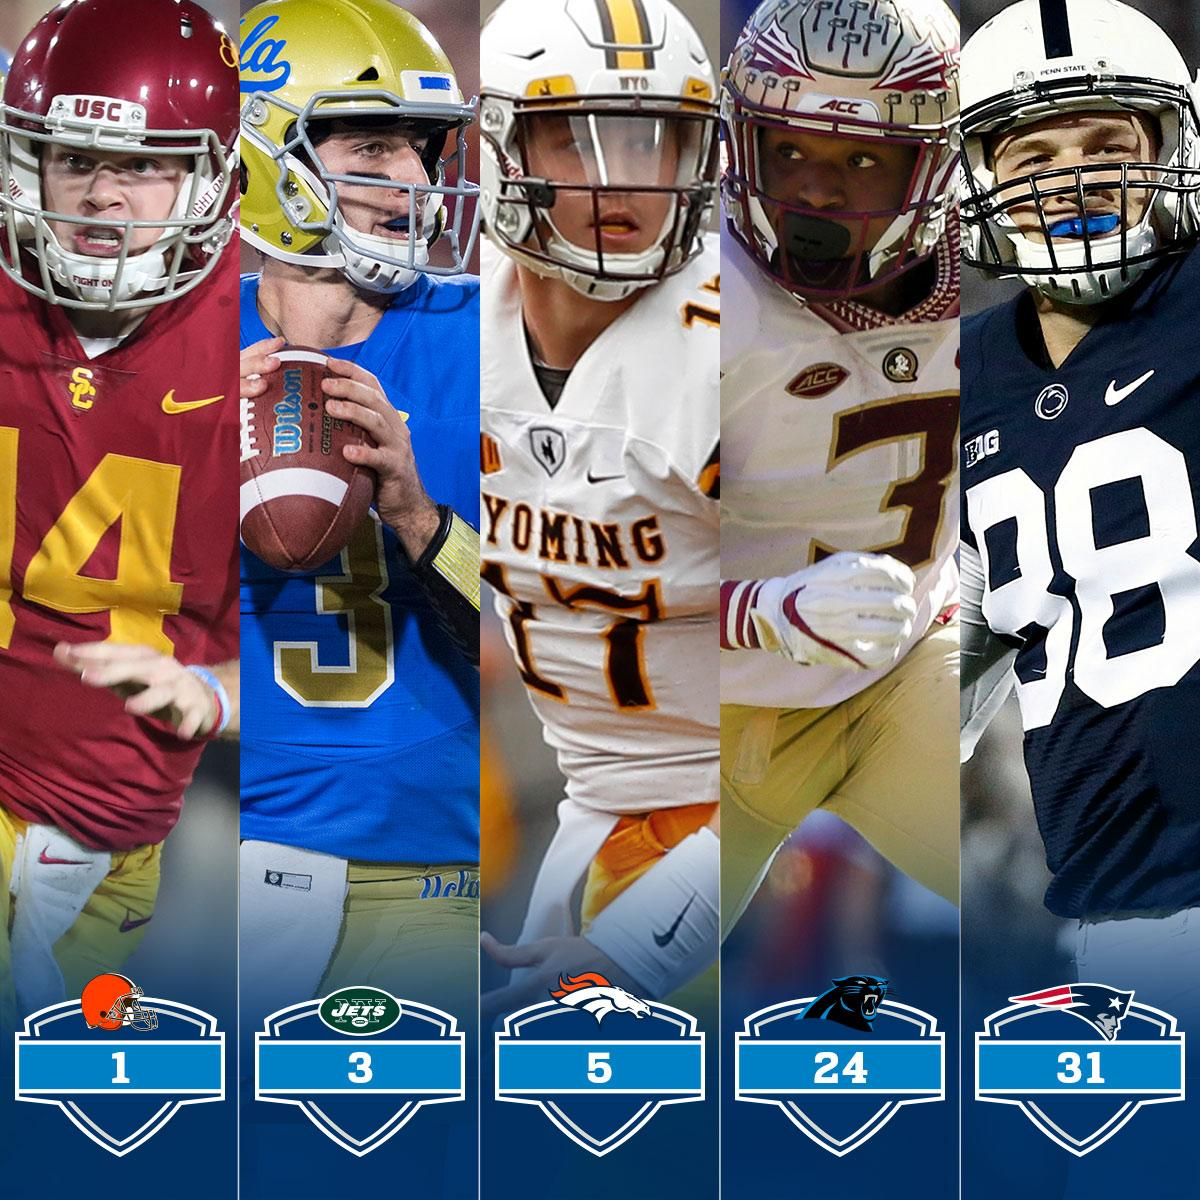 Mock draft 1.0! (via @CurtisConway80)  #Browns, #Jets, #Broncos, #Dolphins, #Bills take QBs. Derwin James slides to #Panthers.  FULL MOCK: https://t.co/qrscsDlWfM